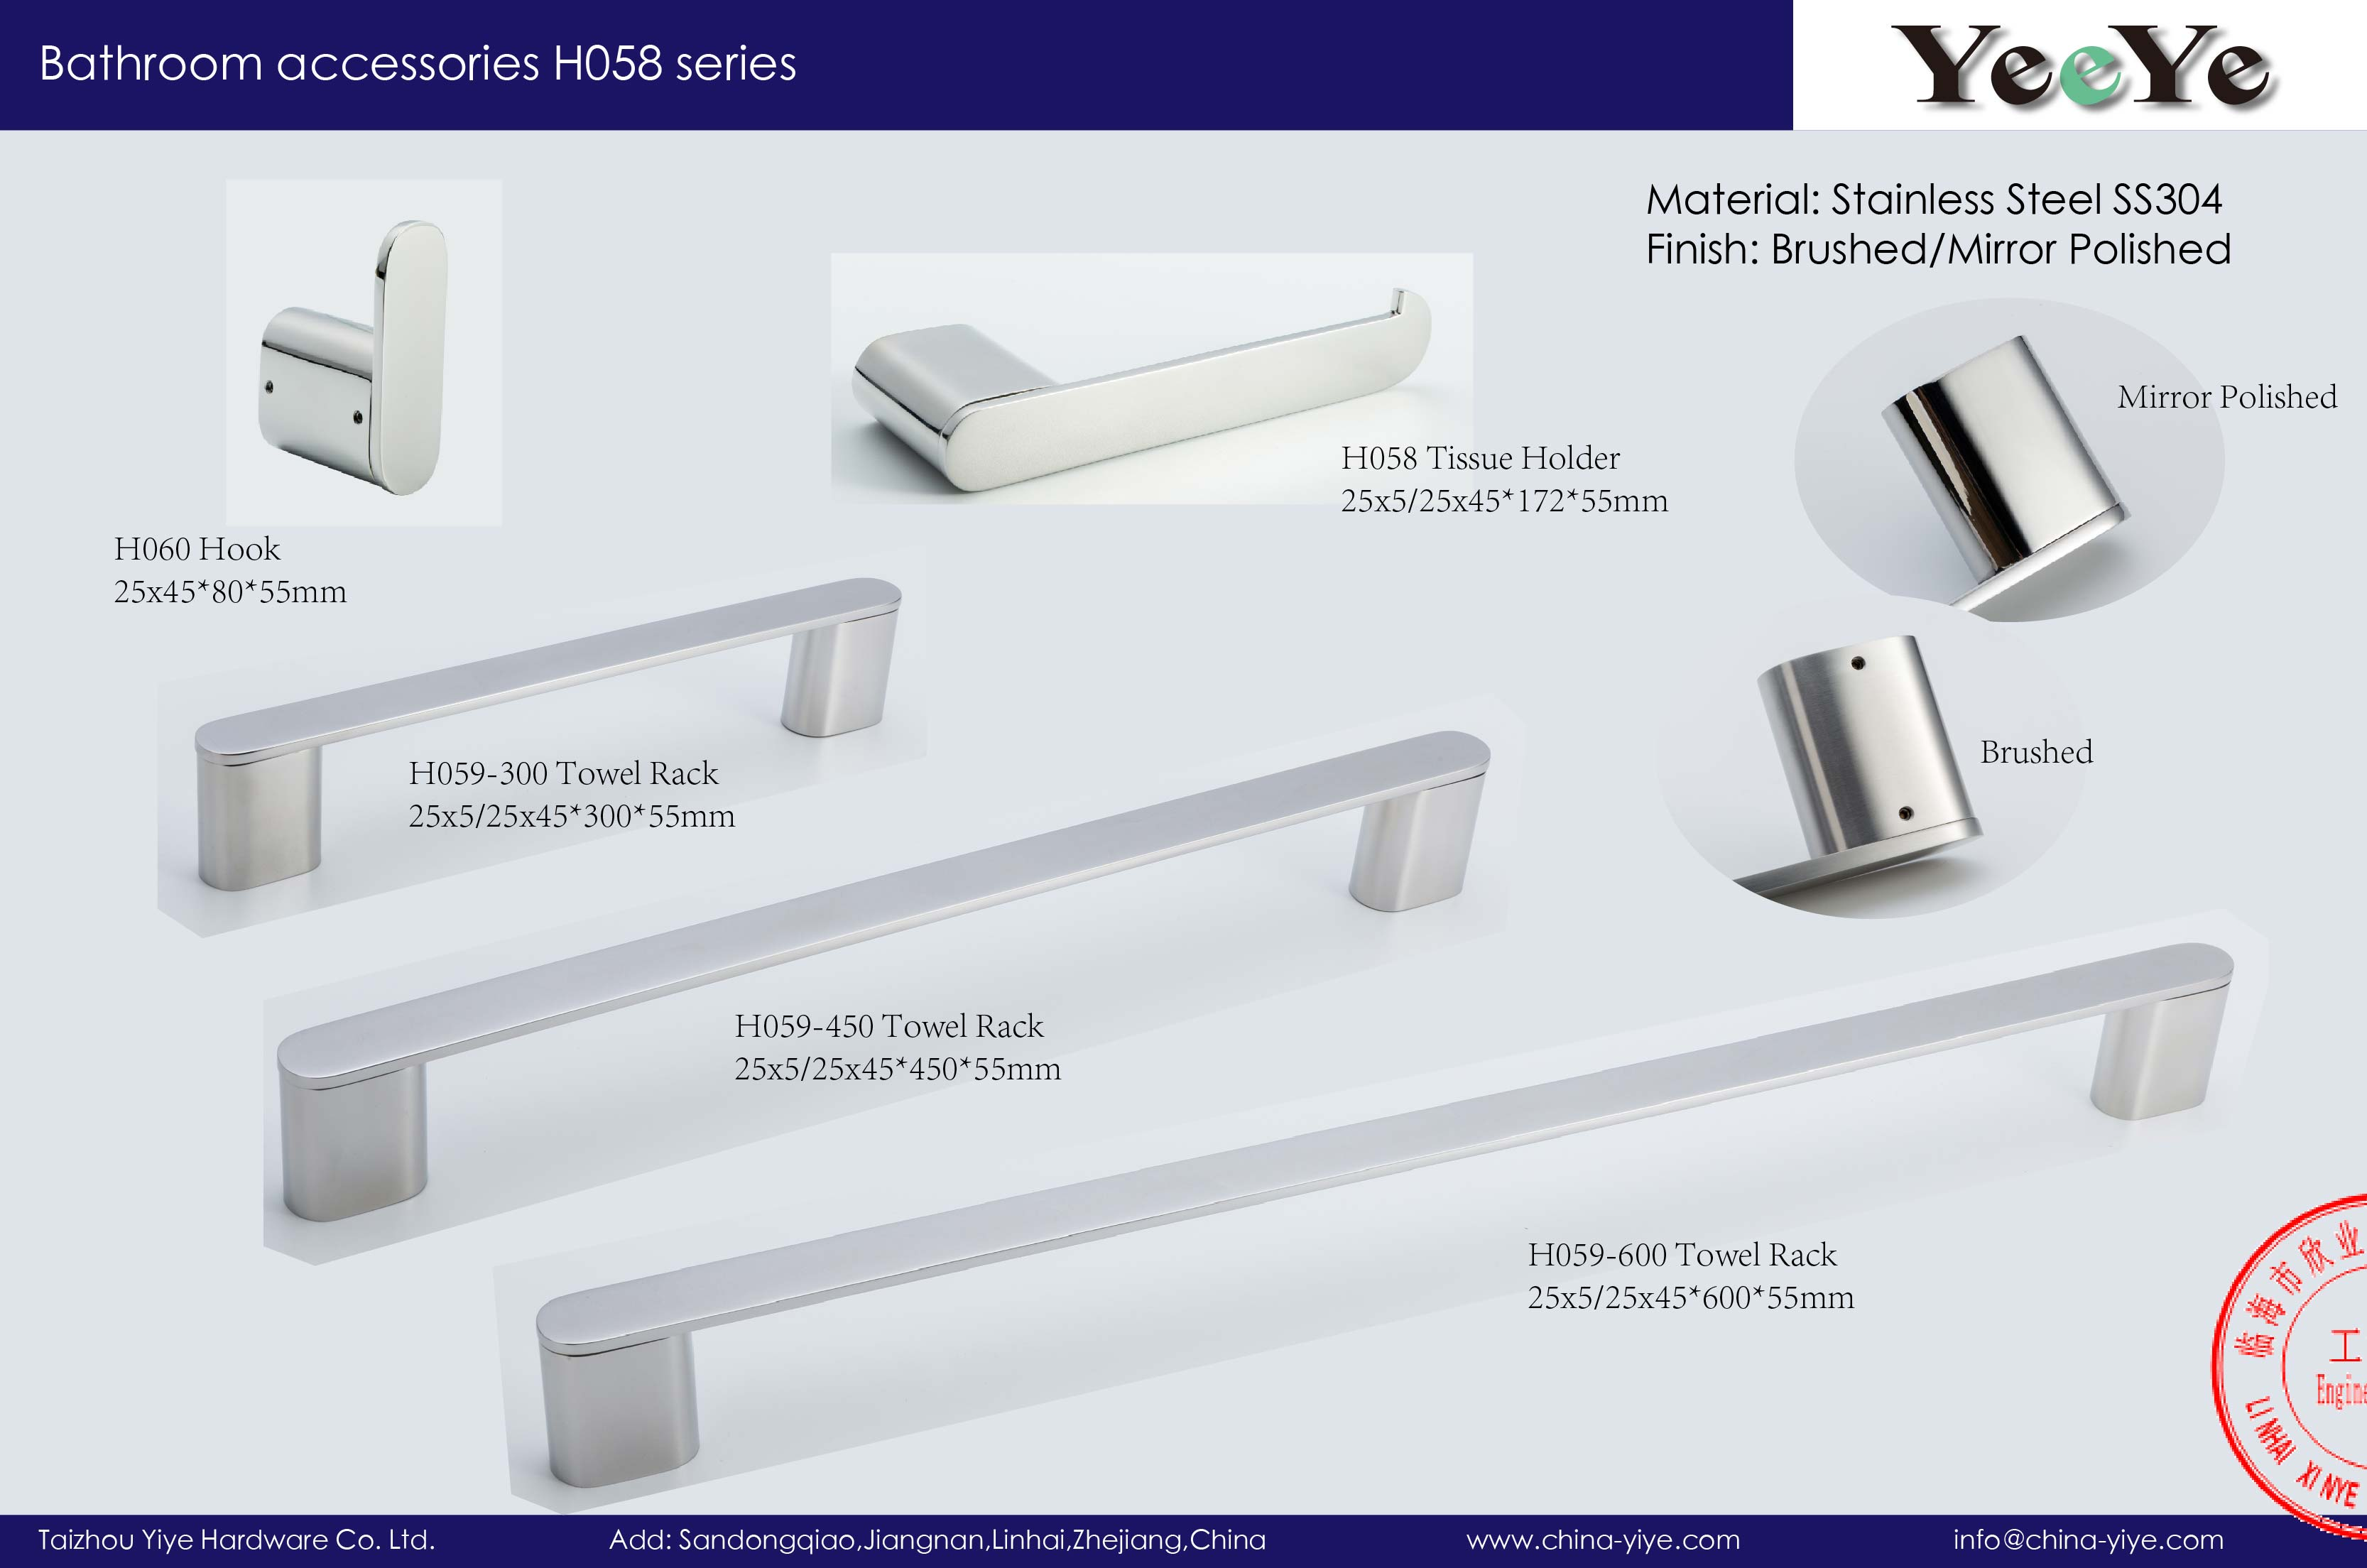 Bathroom accessories H058 series-01.jpg